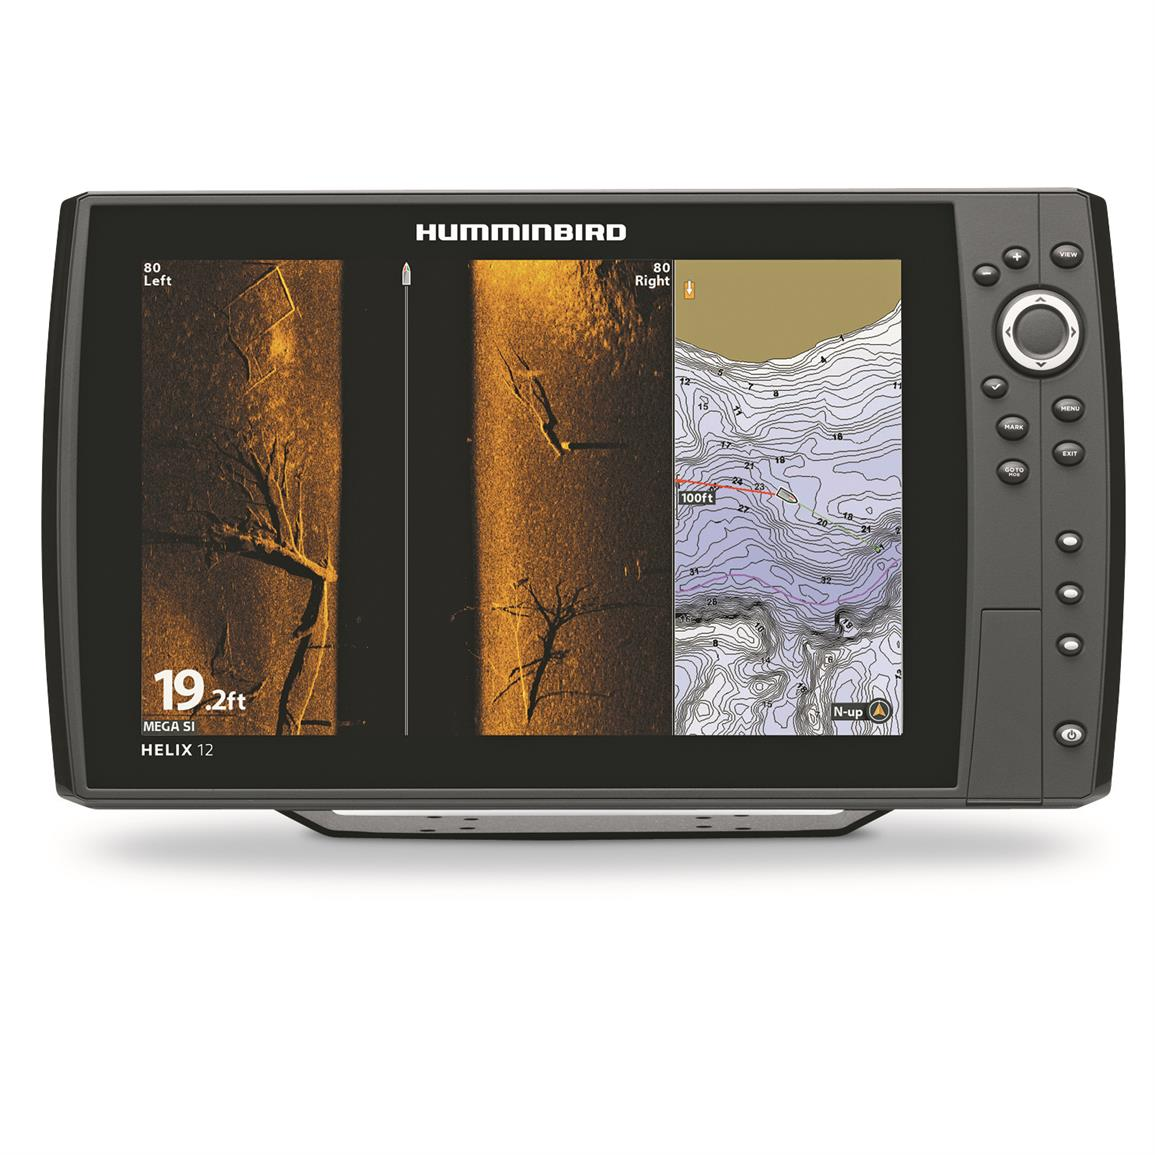 Humminbird HELIX 12 CHIRP MEGA SI GPS G2N Sonar Fish Finder